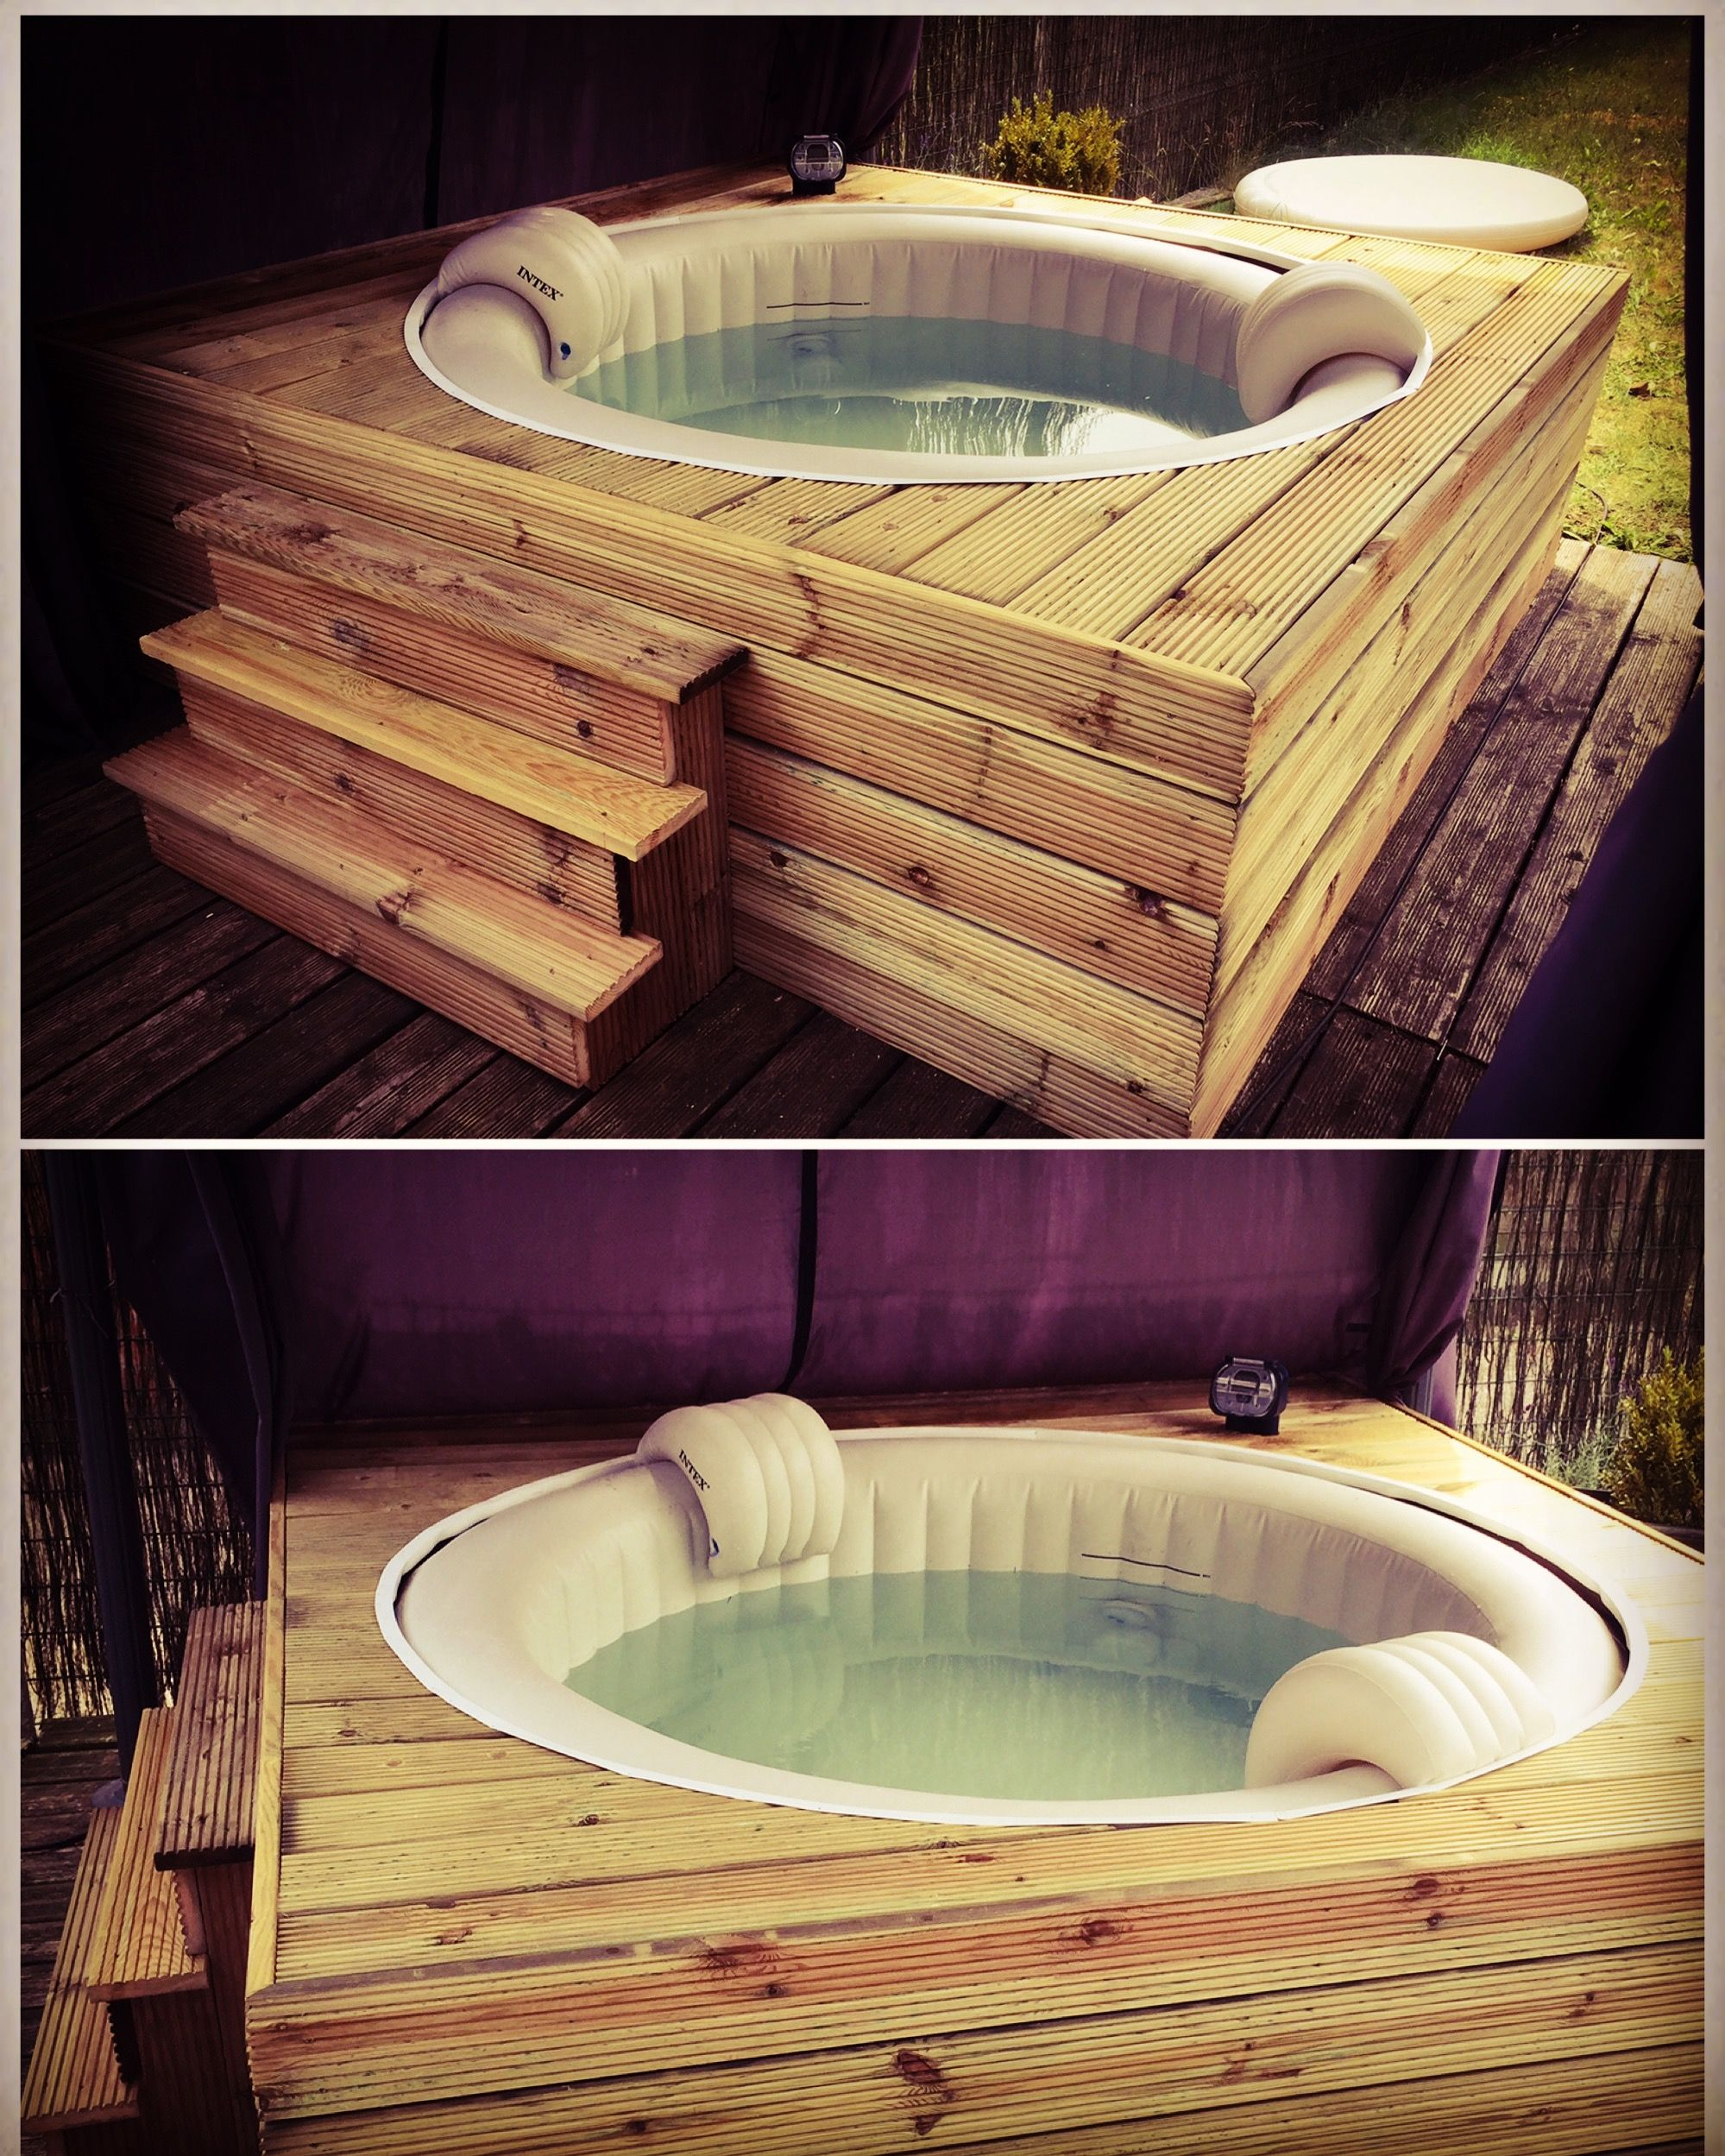 Habillage Jacuzzi Gonflable Intex Fabrication D Un Habillage En